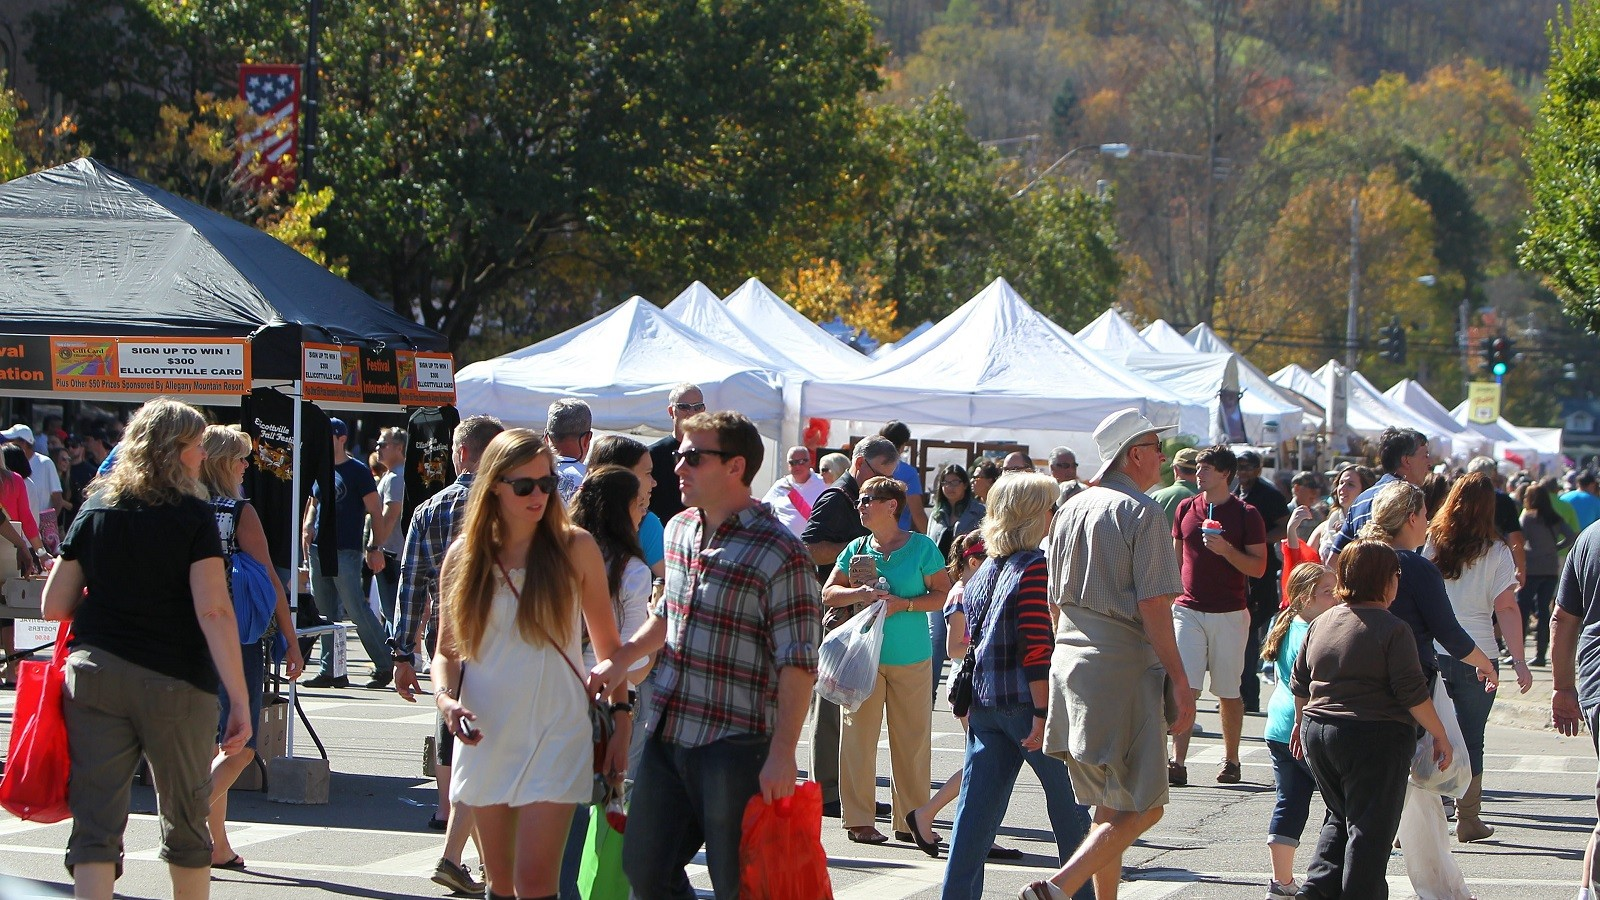 Thousands converge on Ellicottville for this weekend's Fall Festival. Here's what you should know before you go. (Mark Mulville/Buffalo News file photo)